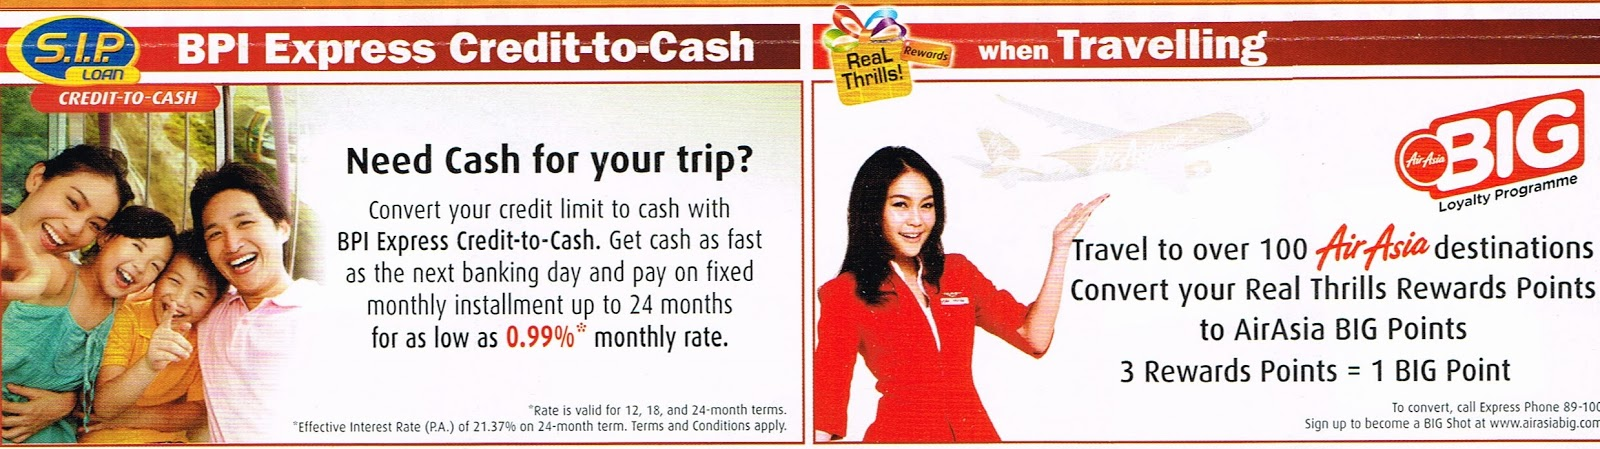 BPI Express Credit: Thrill Seekers July-August 2014